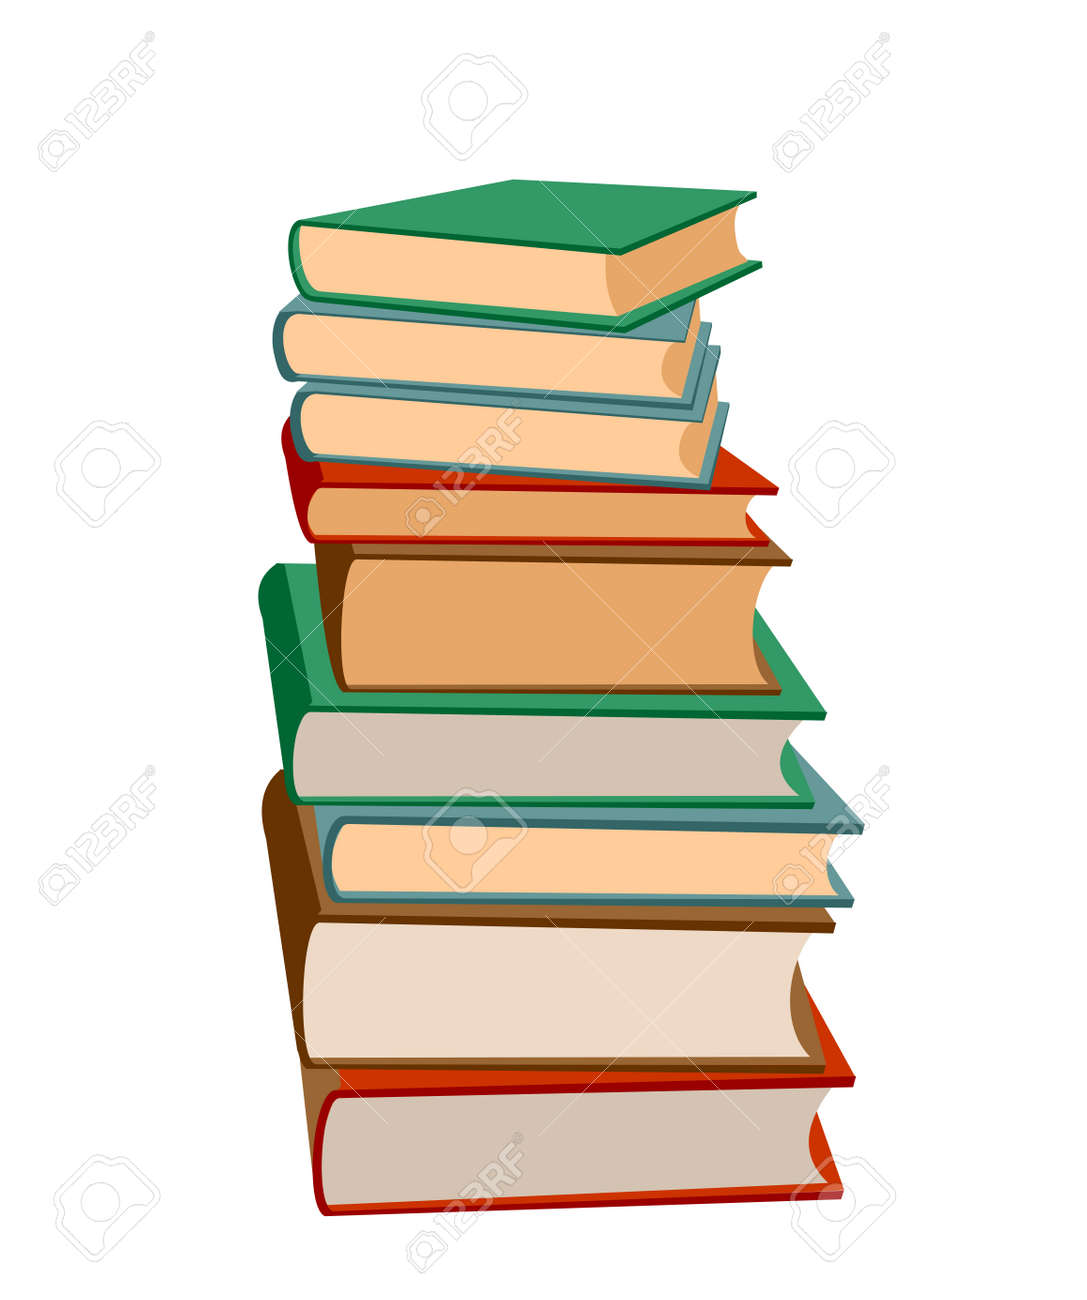 Stack of books on a white background. Pile of books vector illustration. Icon stack of books in flat style. Template design with books pile. Set of book icons in flat design style. - 169743661